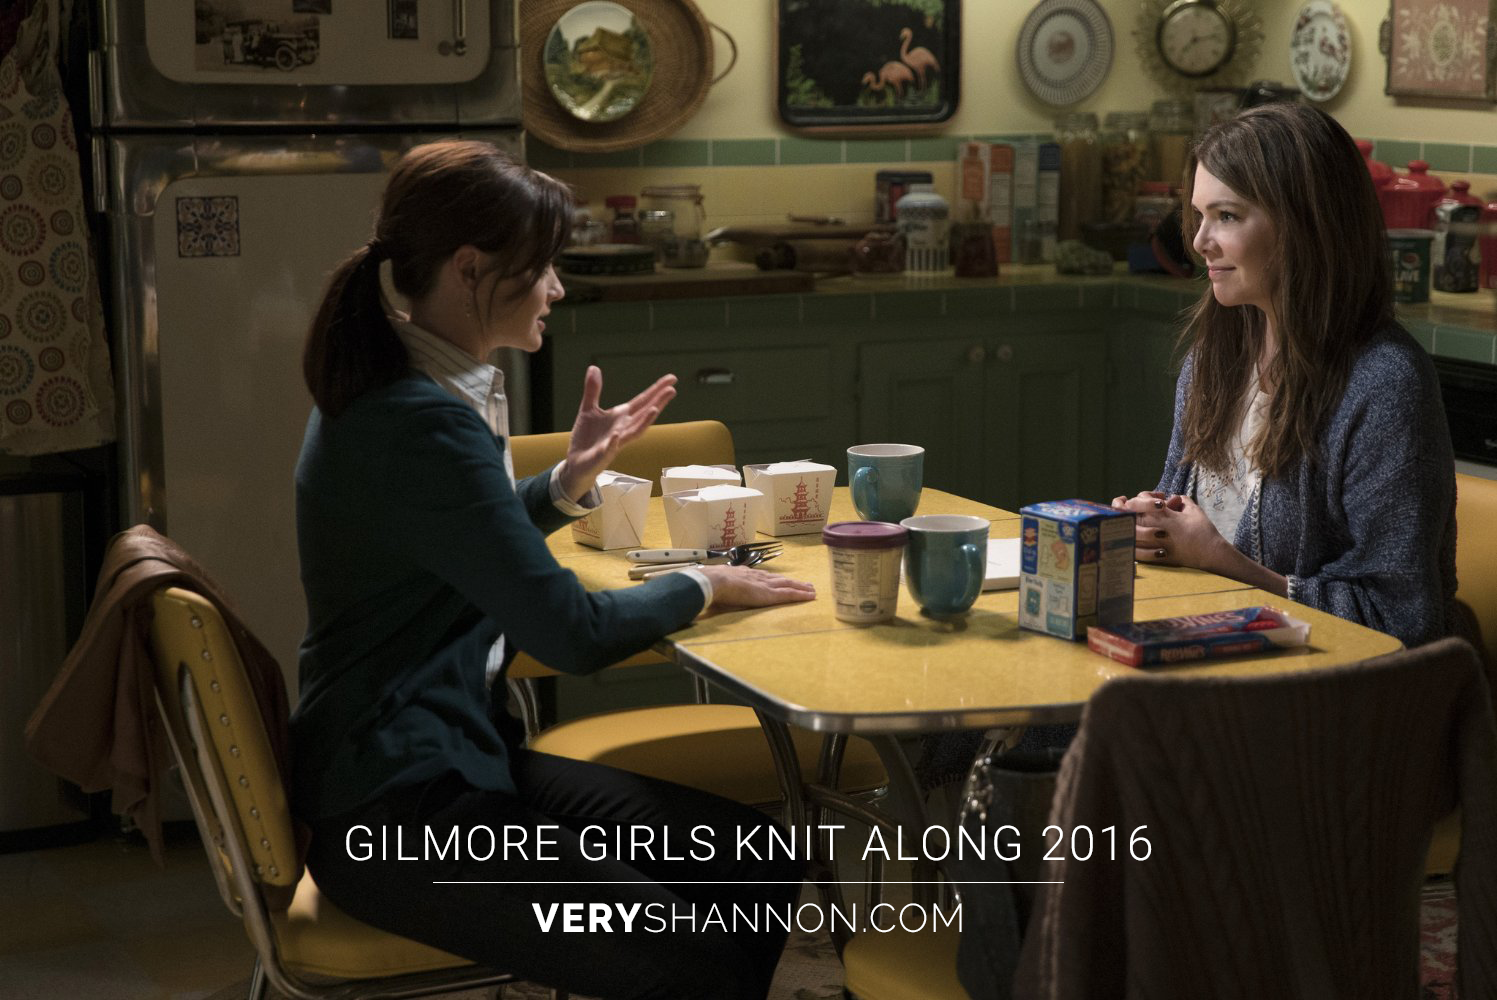 Gilmore Girls Knit along 2016